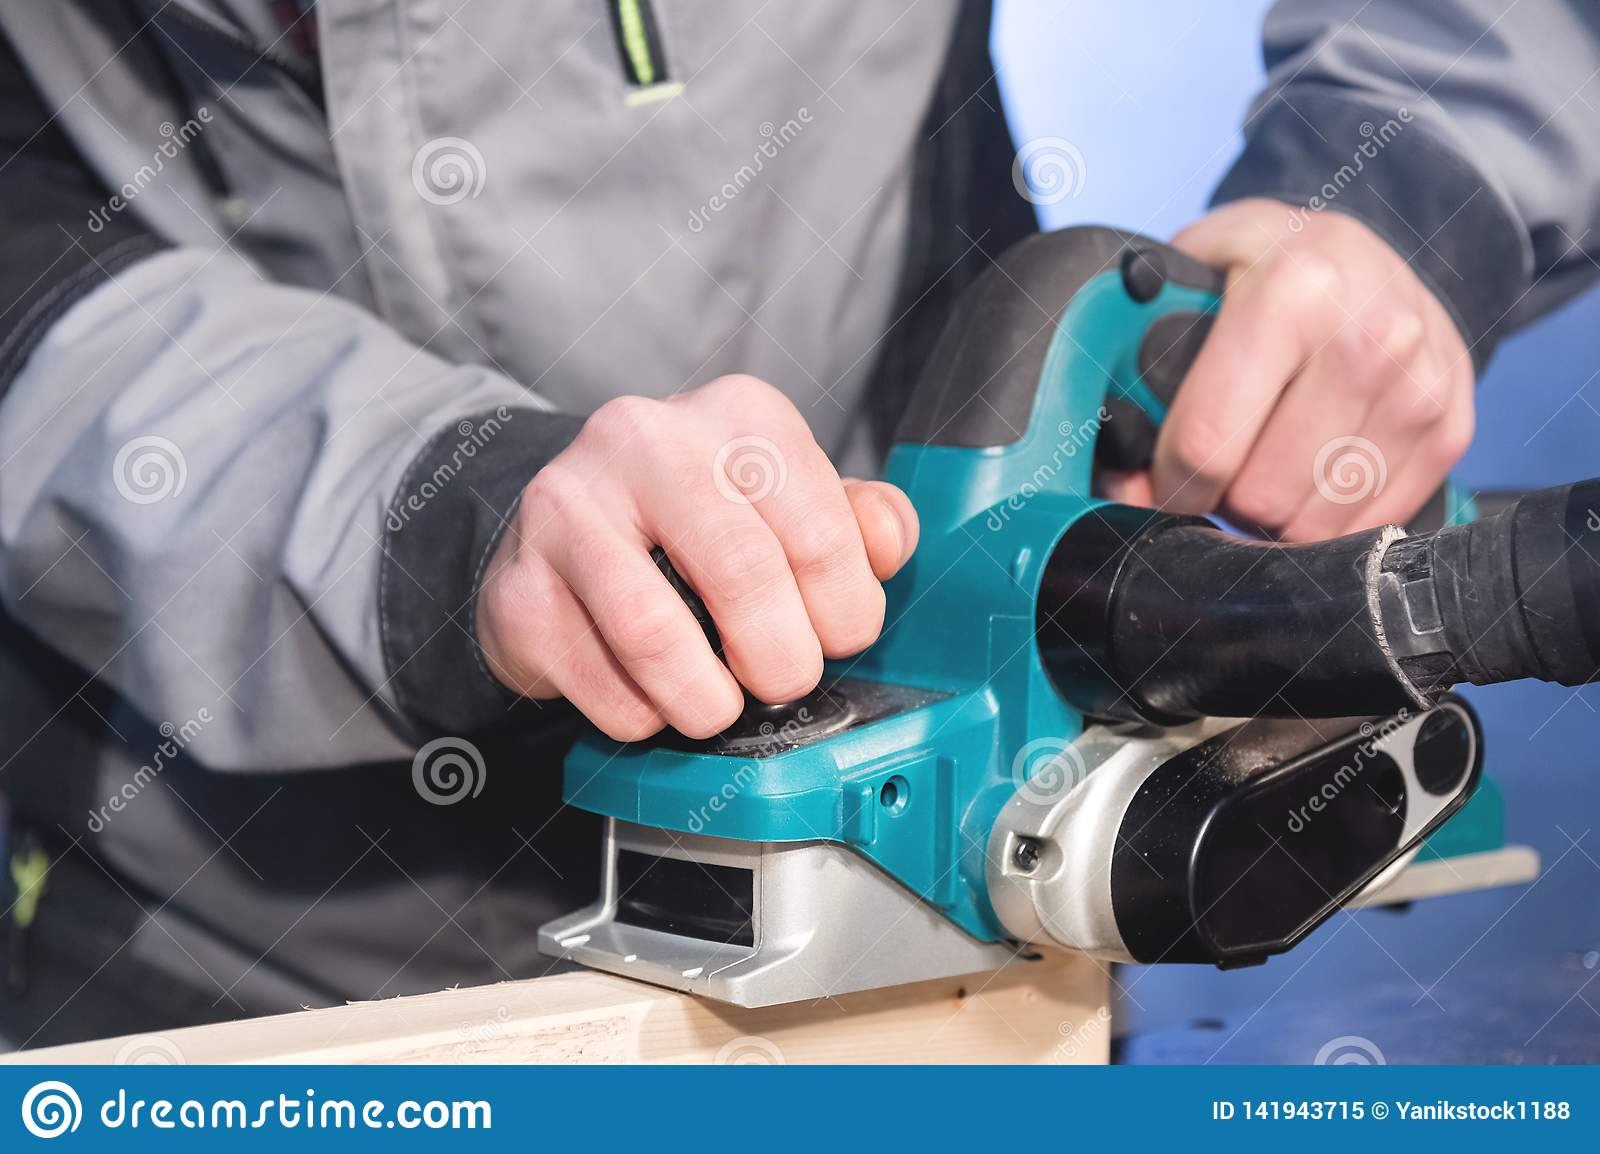 Close-up of a carpenter`s hand working with an electric plane with suction of sawdust. Leveling and sanding wooden bars